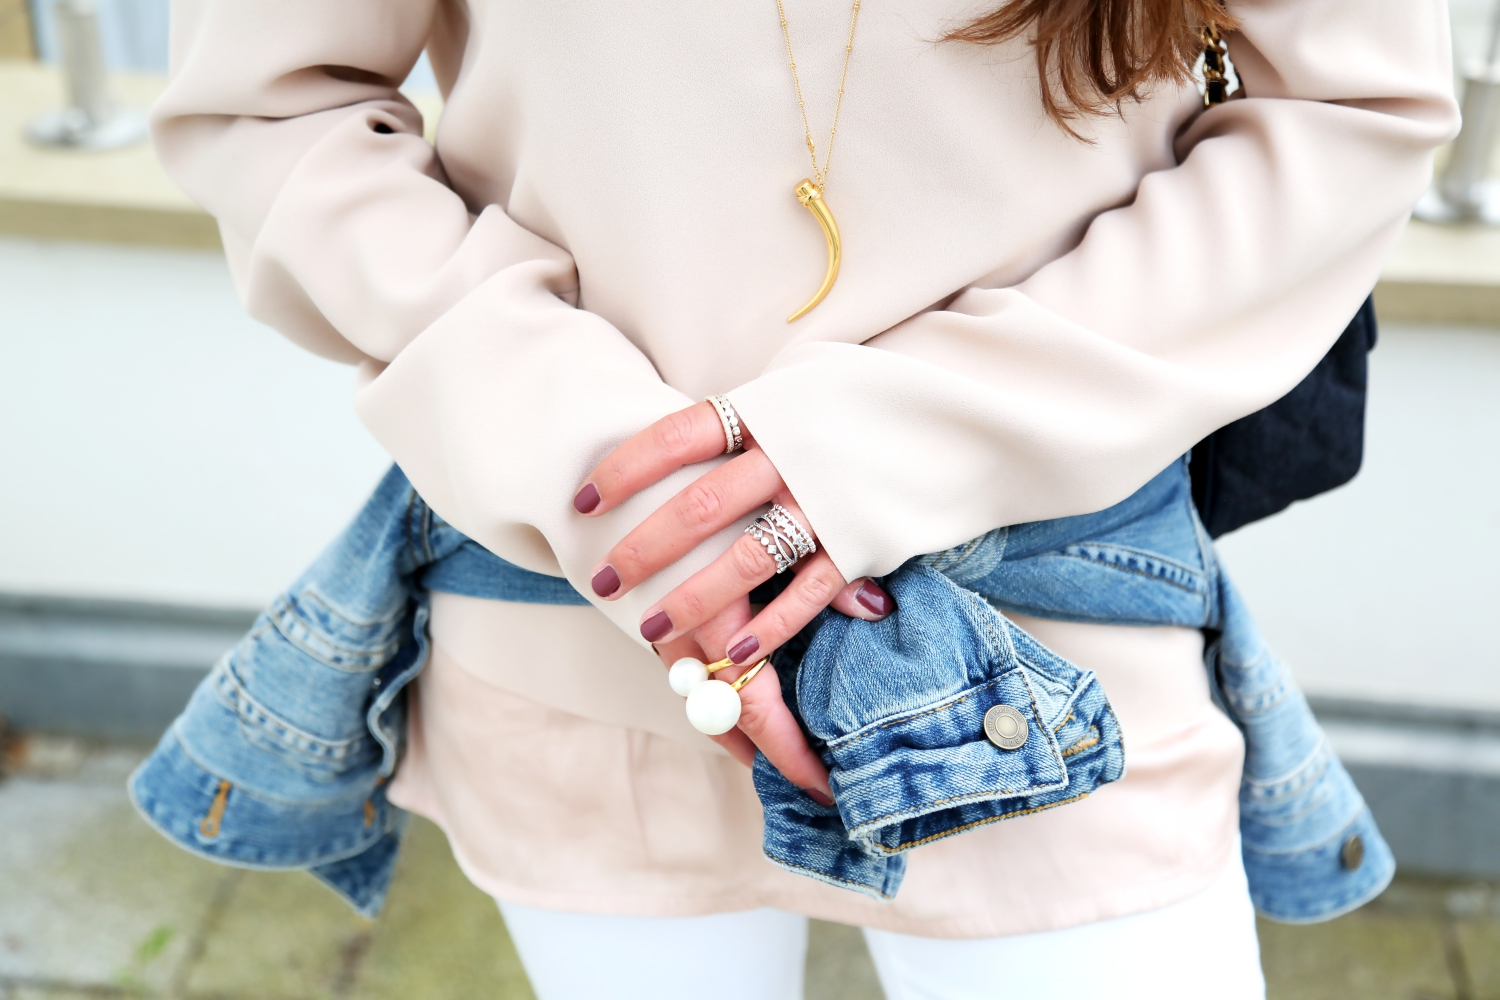 outfit-denim-look-pandora-ring-stacks-ripped-jeans